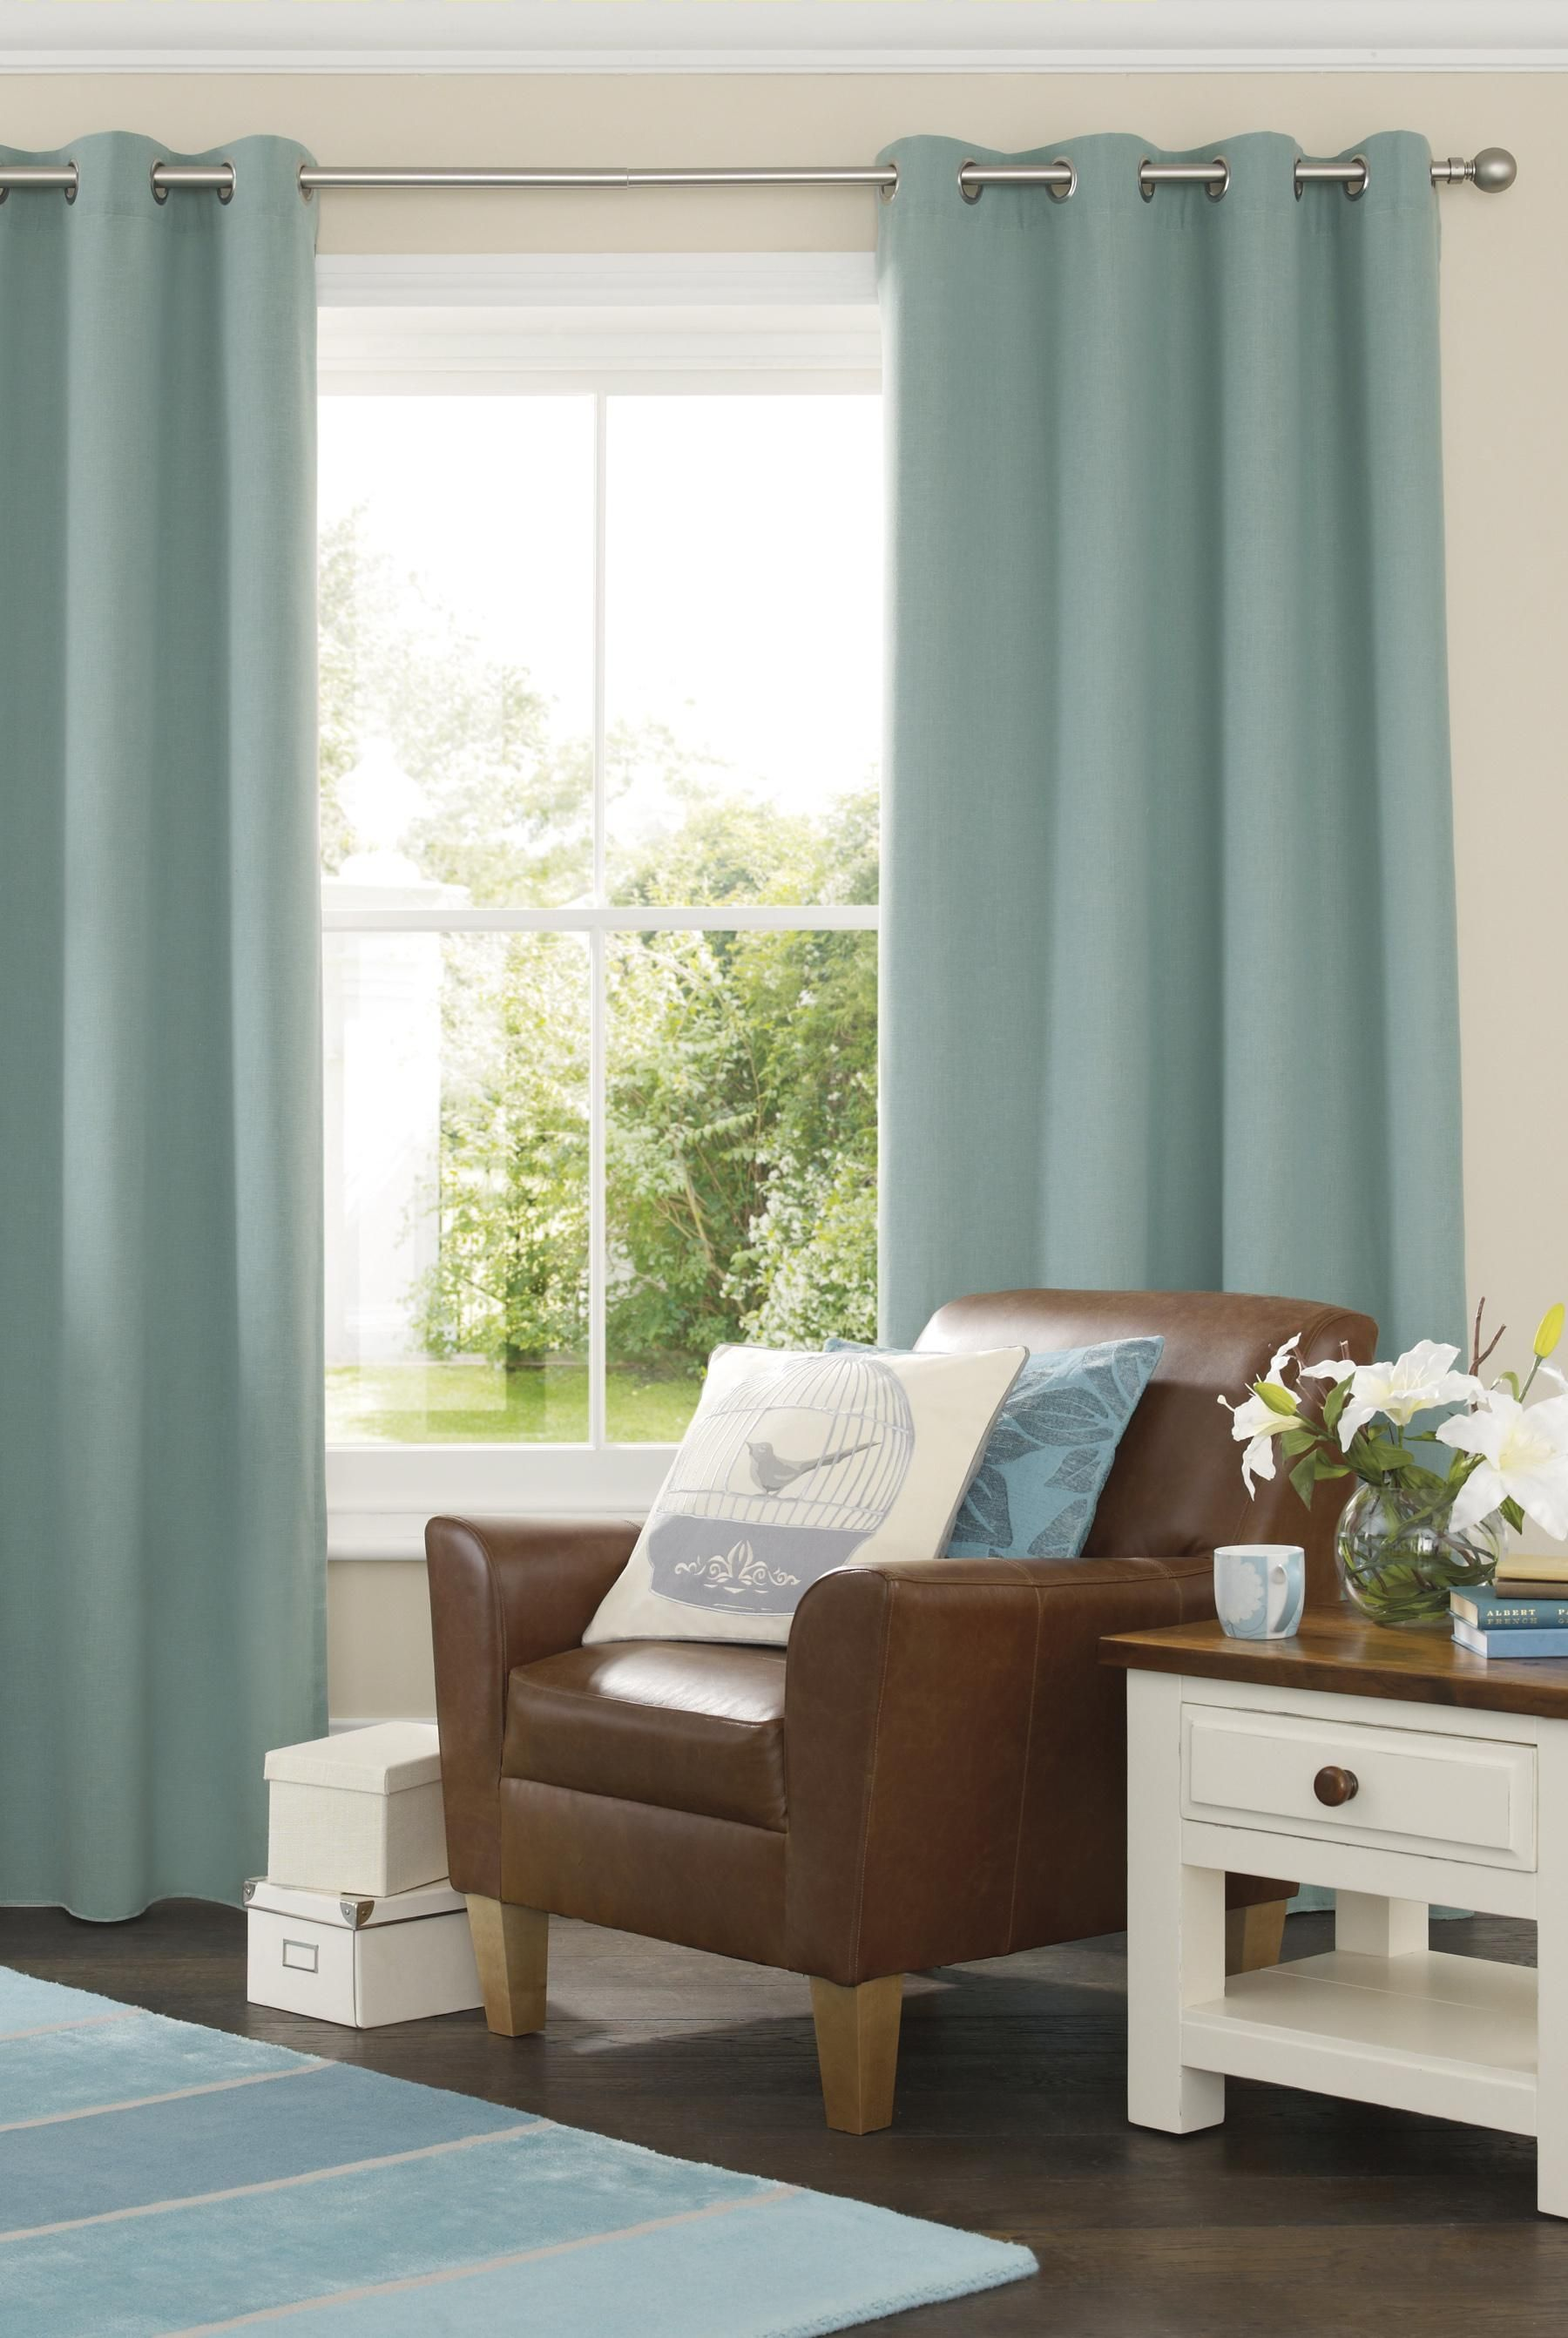 10+ Best Teal And Gray Curtains Living Room